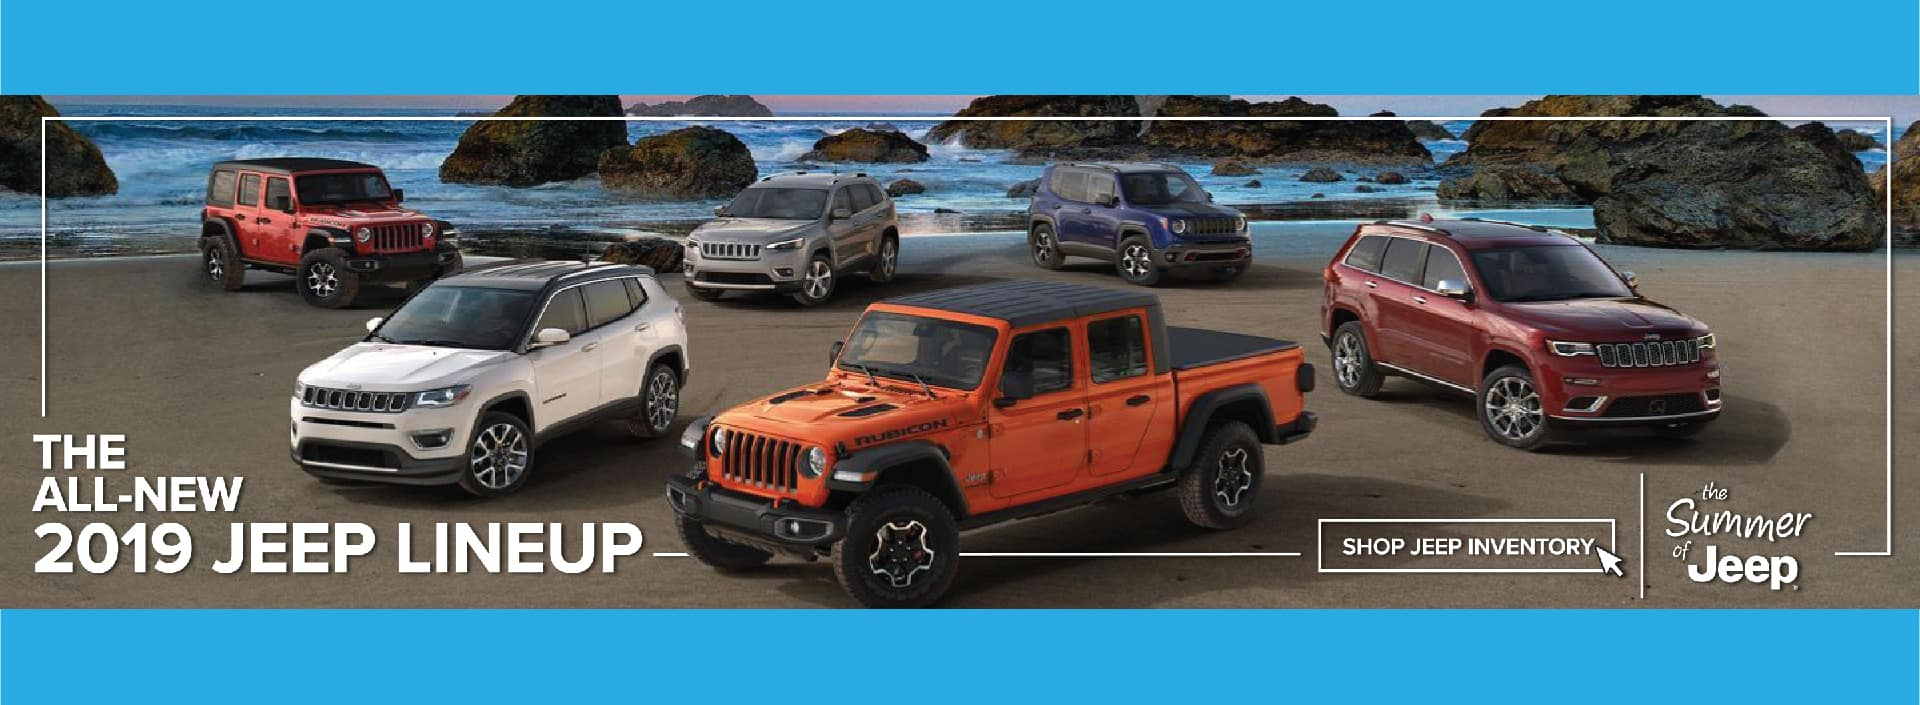 Jeep Dealers Dayton Ohio >> Cronin Cdjr Chrysler Dodge Jeep Ram Dealer In Lebanon Oh